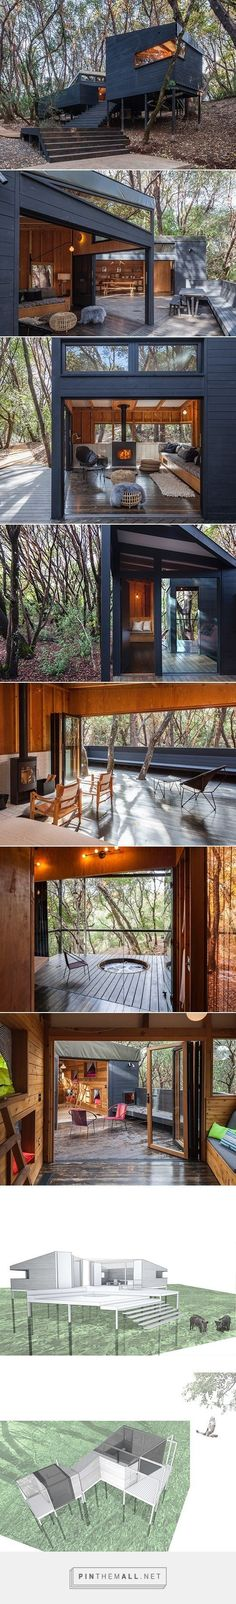 Container House - Forest House - envelopeA D - created via pinthemall.net Who Else Wants Simple Step-By-Step Plans To Design And Build A Container Home From Scratch?